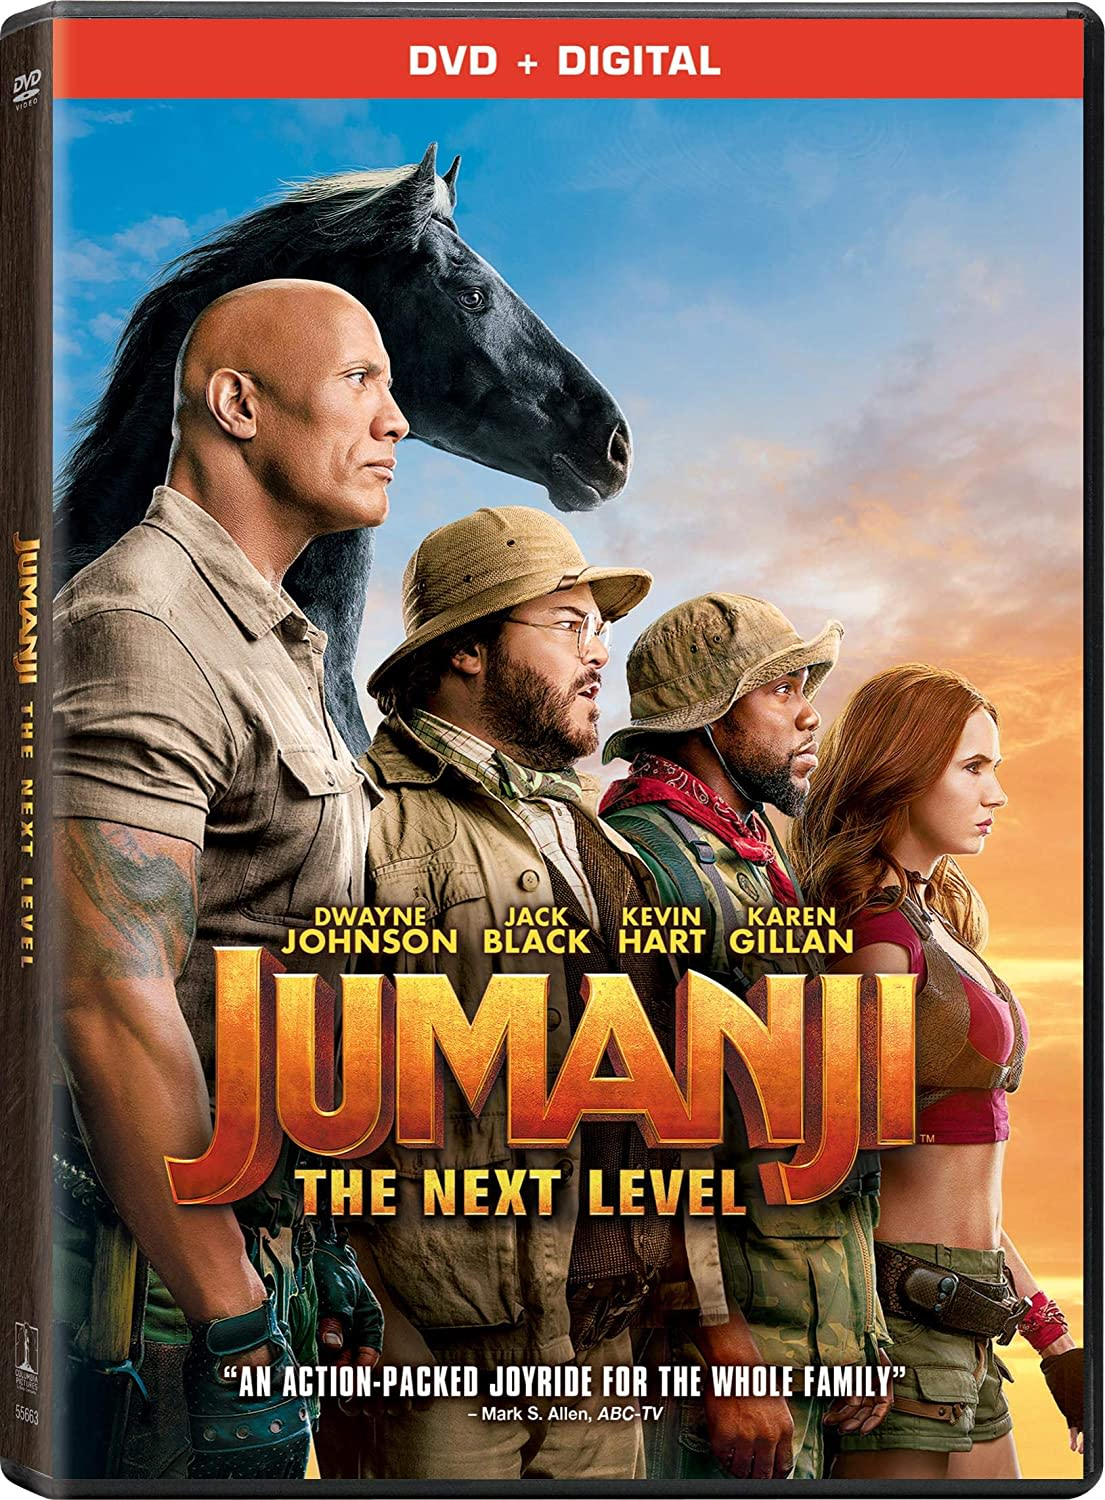 Jumanji: The Next Level  (DVD + Digital) [DVD]